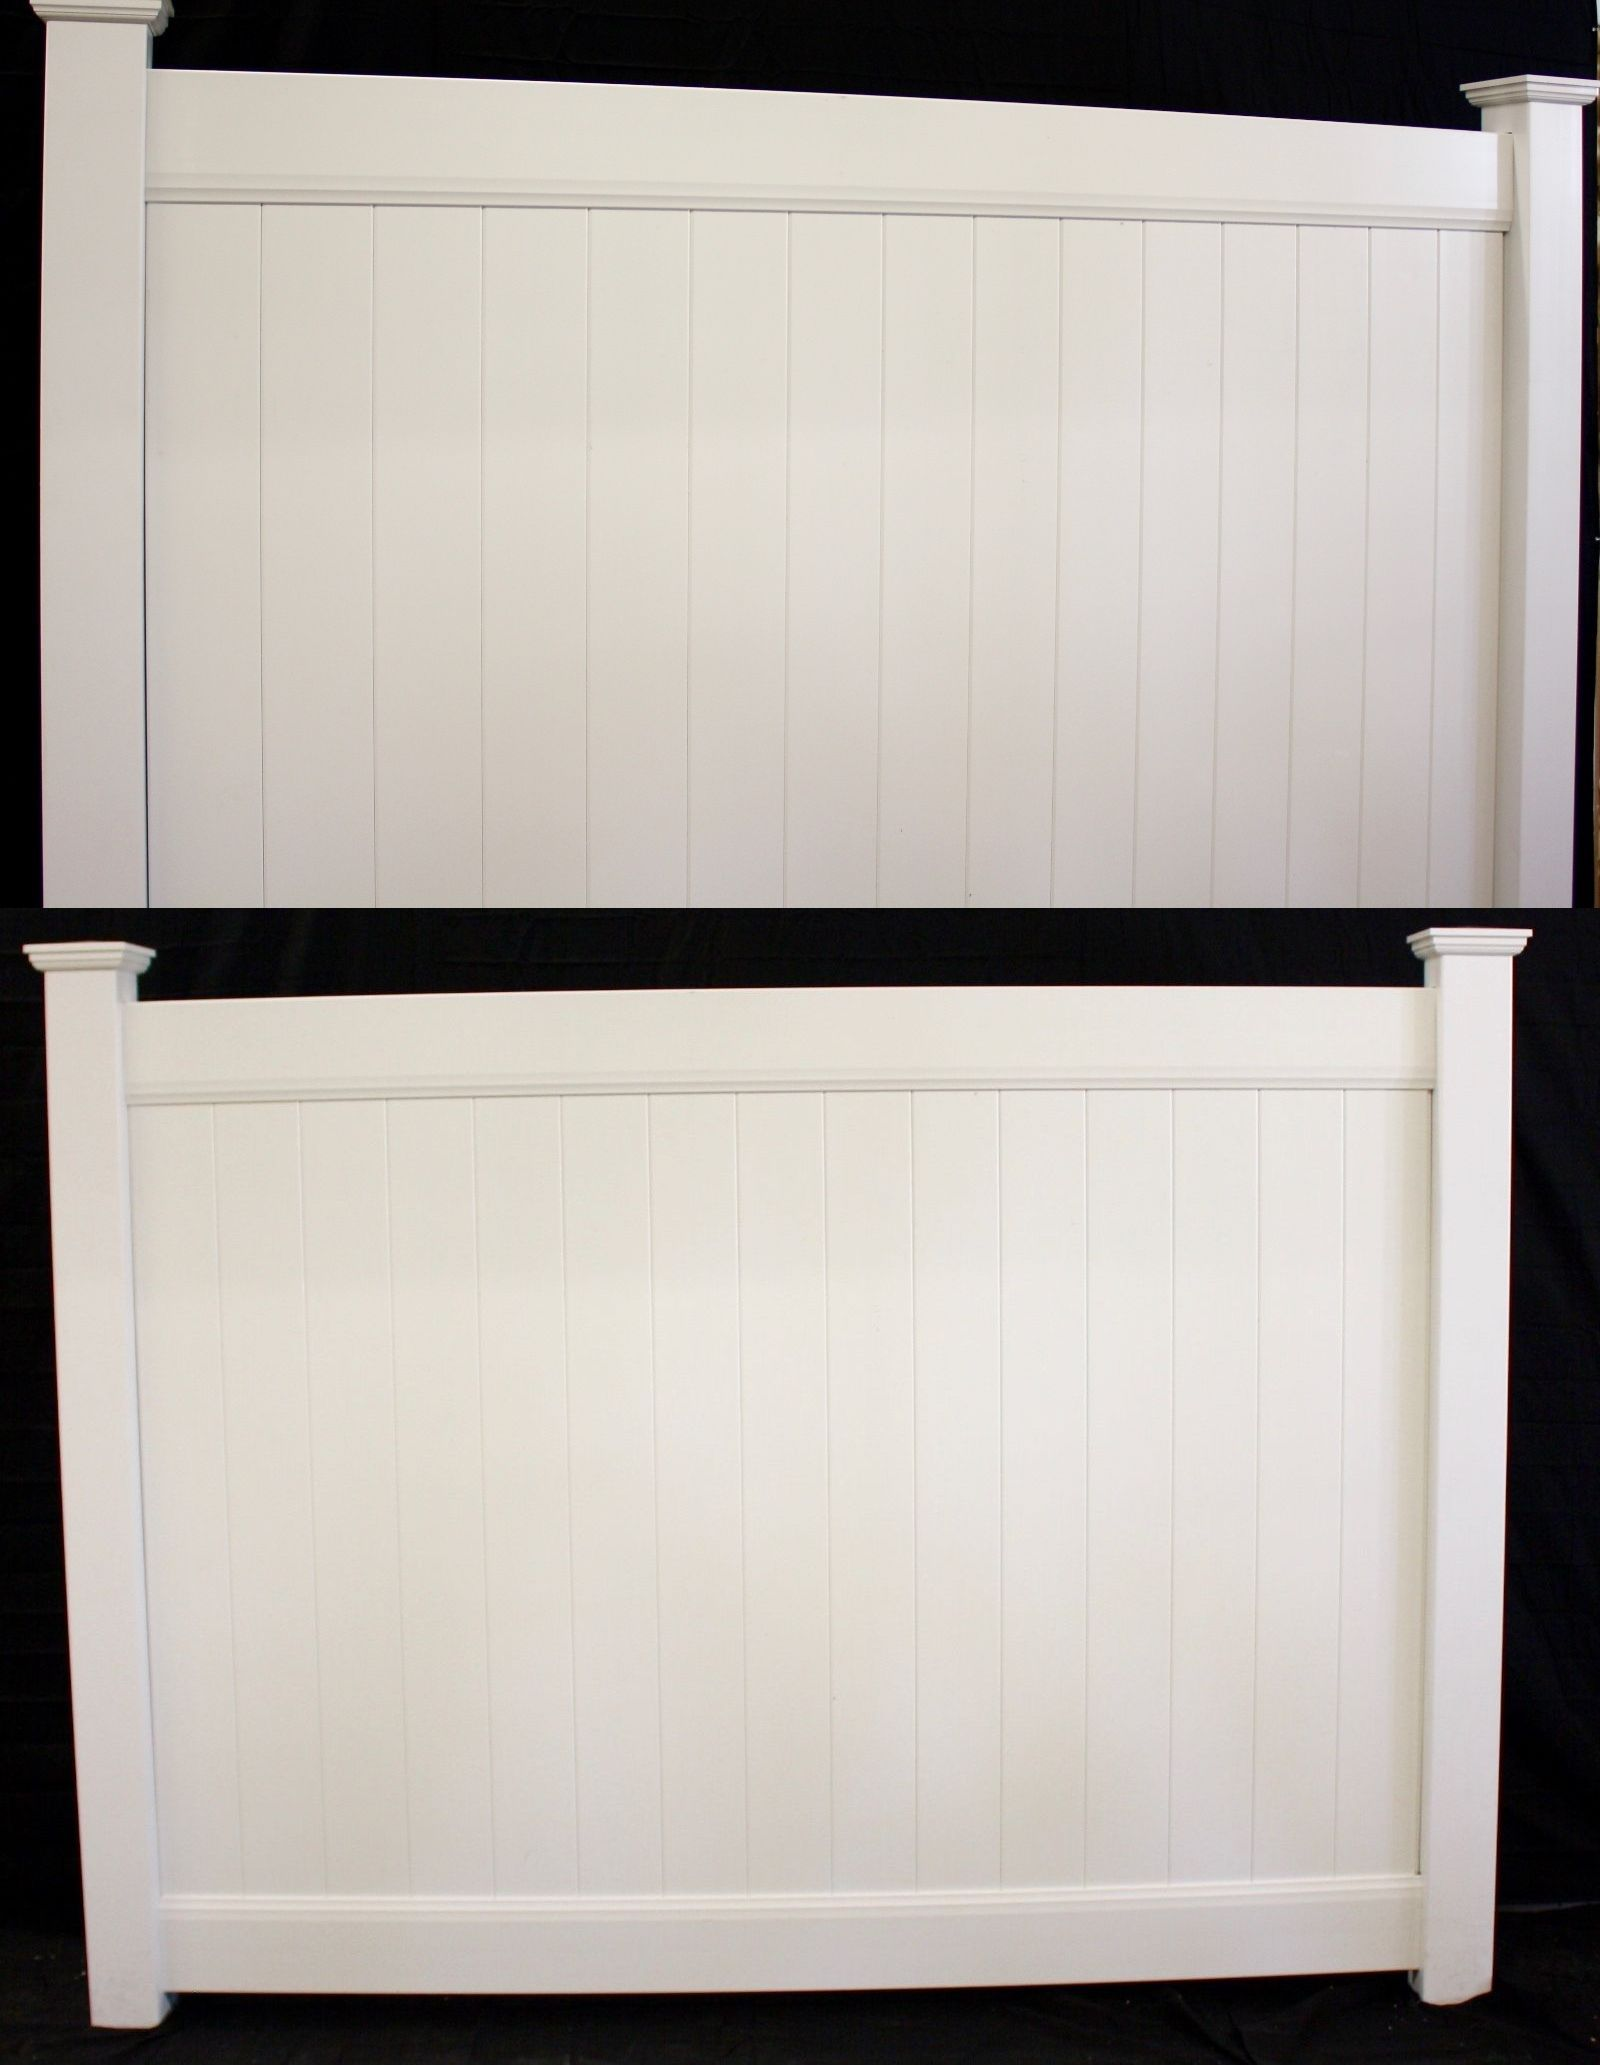 Fence Panels 139946: 6 X 8 White Pvc Solid Privacy Vinyl